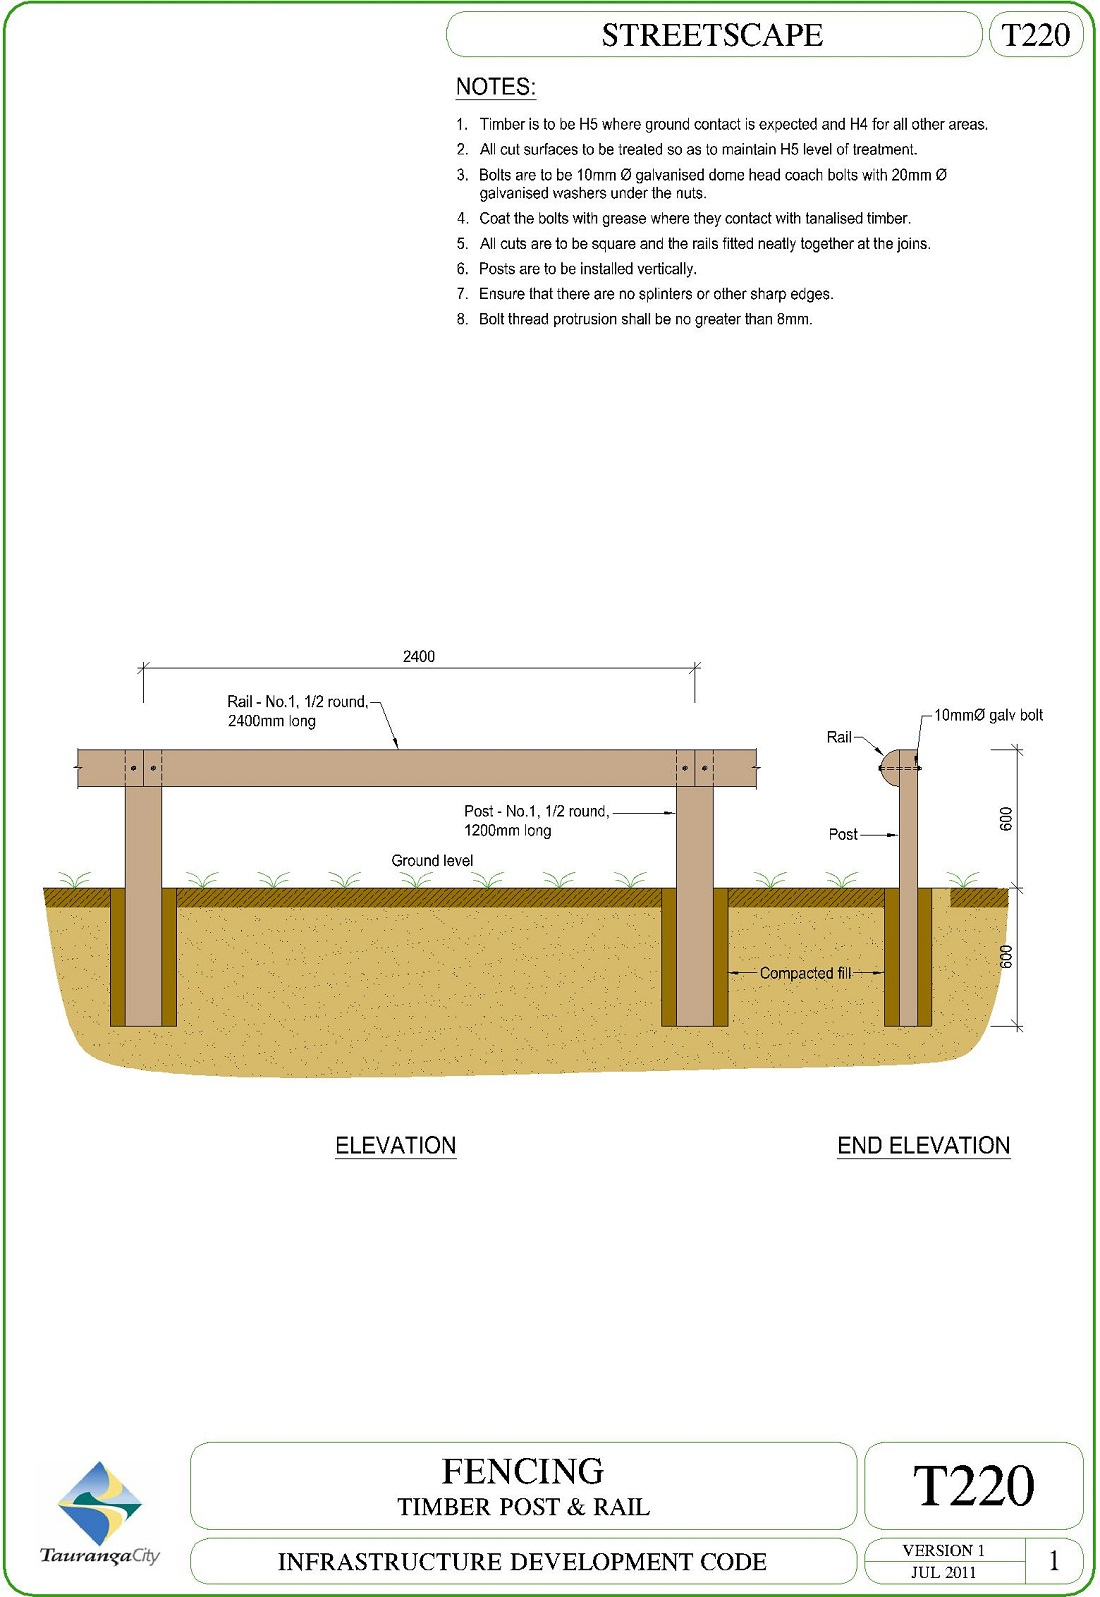 Fencing - Timber Post and Rail